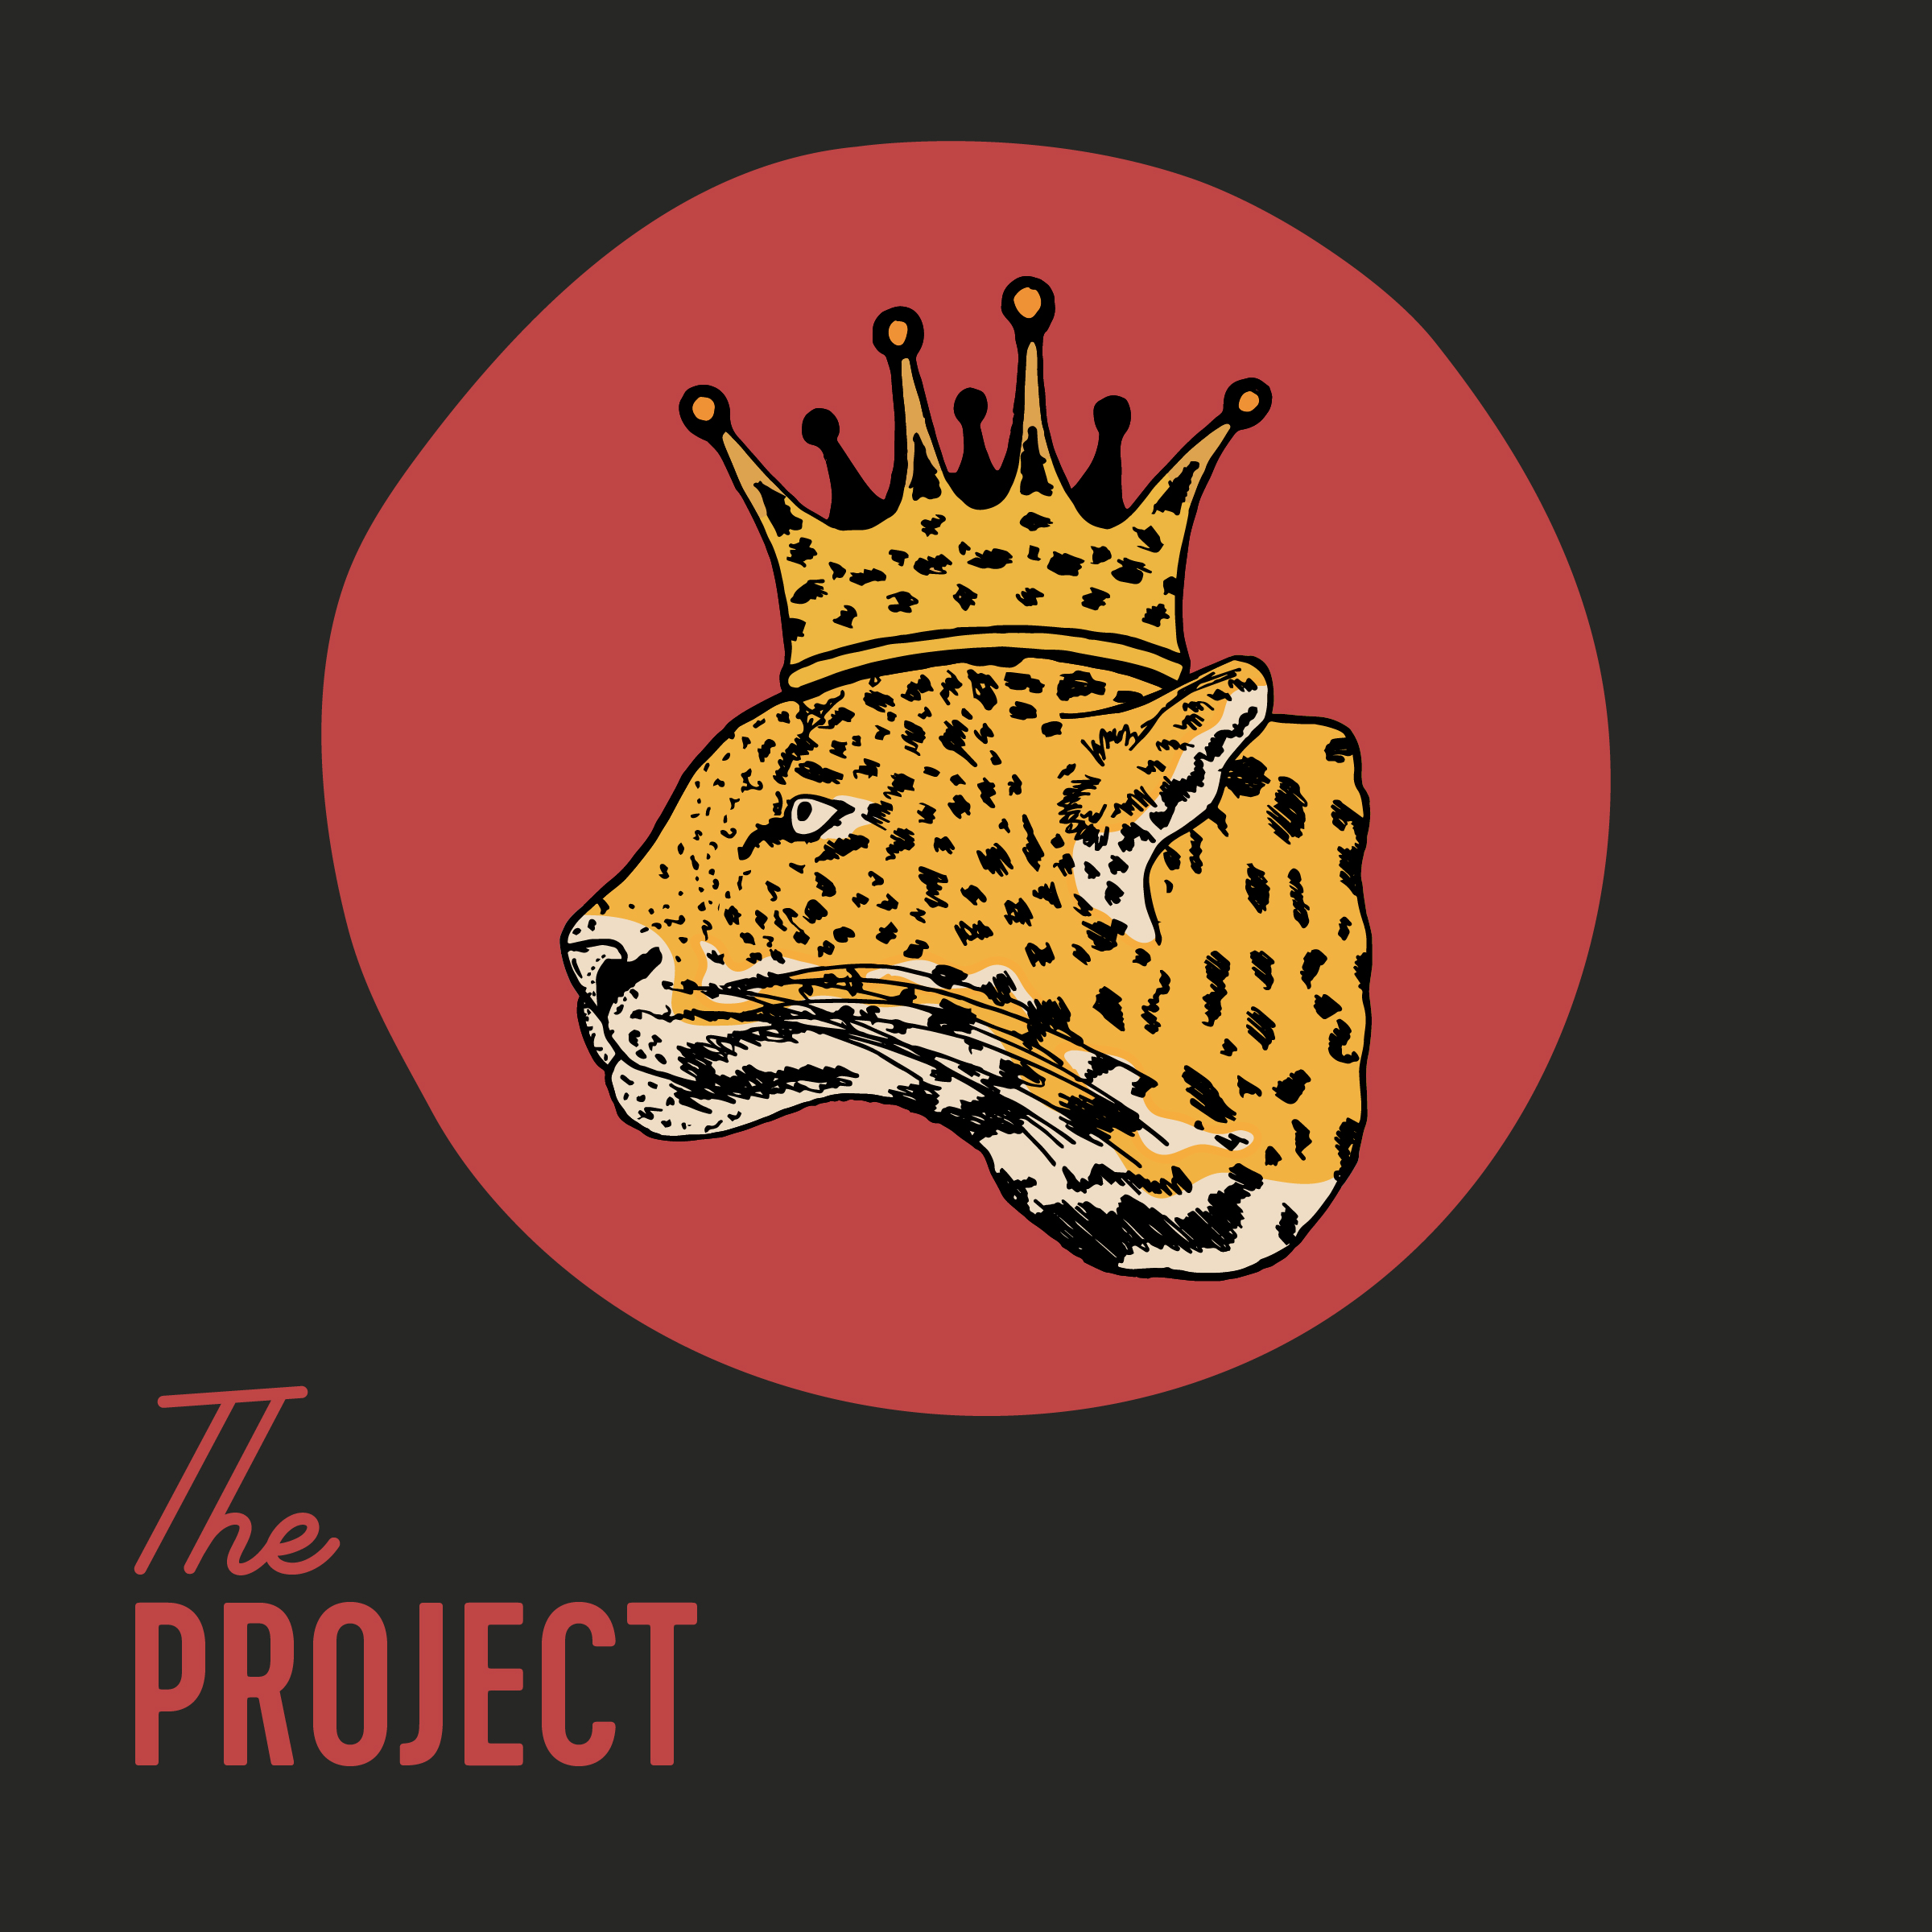 theproject jag-01.jpg